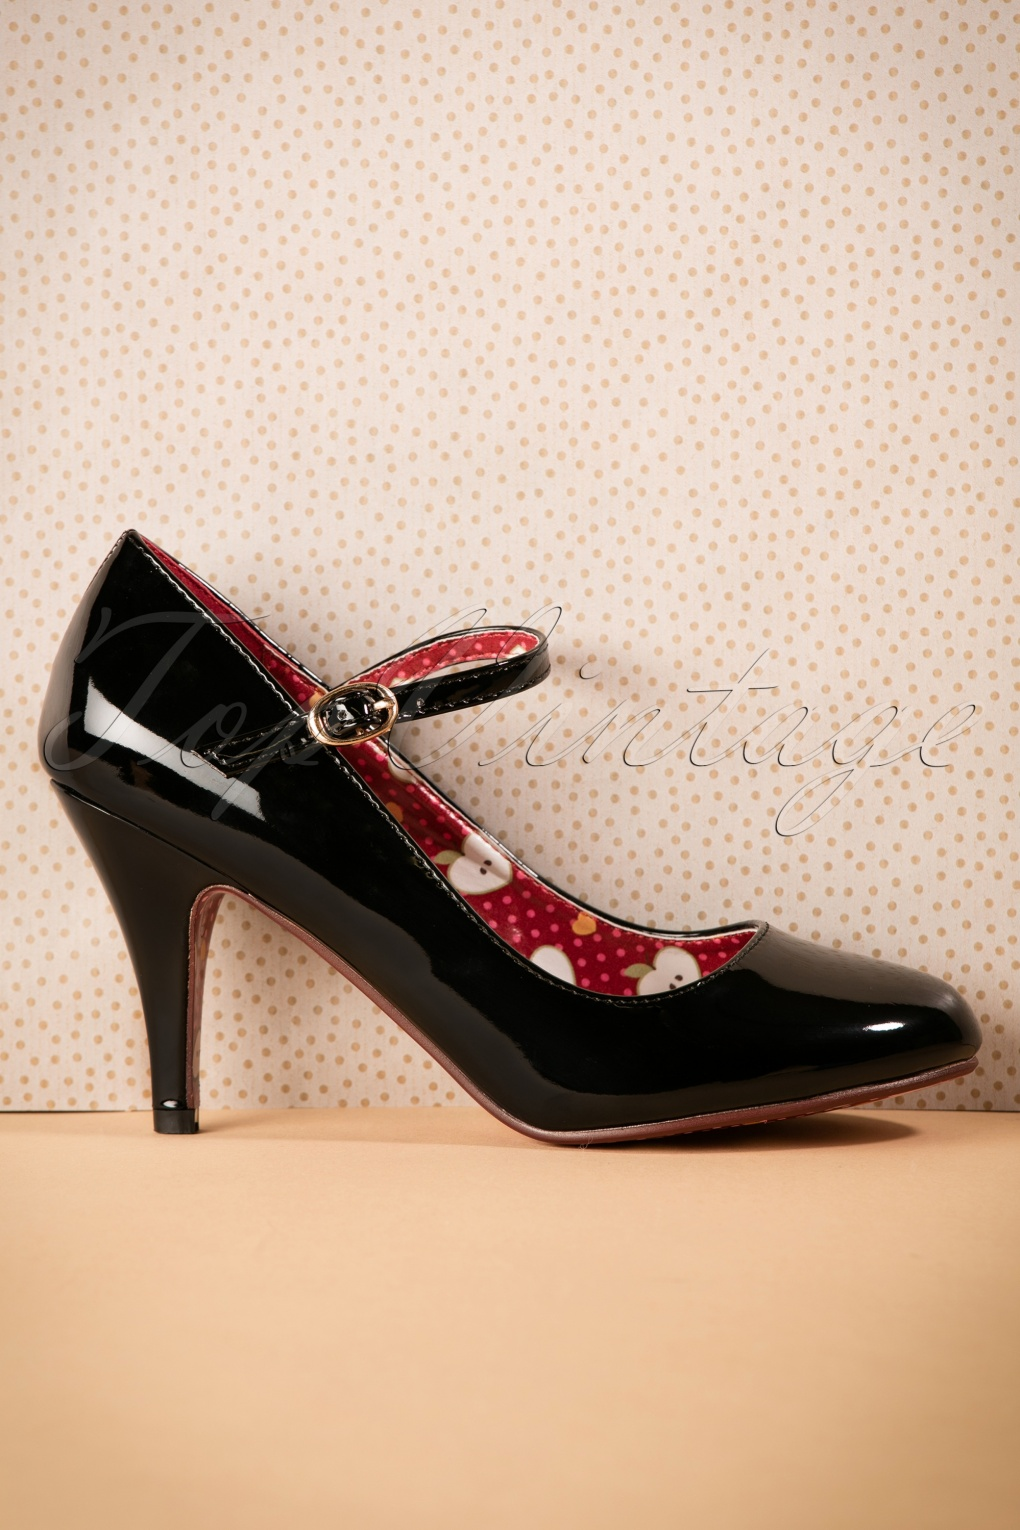 1960s Style Shoes 60s Jean Jeanie Lacquer Pumps in Black £46.67 AT vintagedancer.com